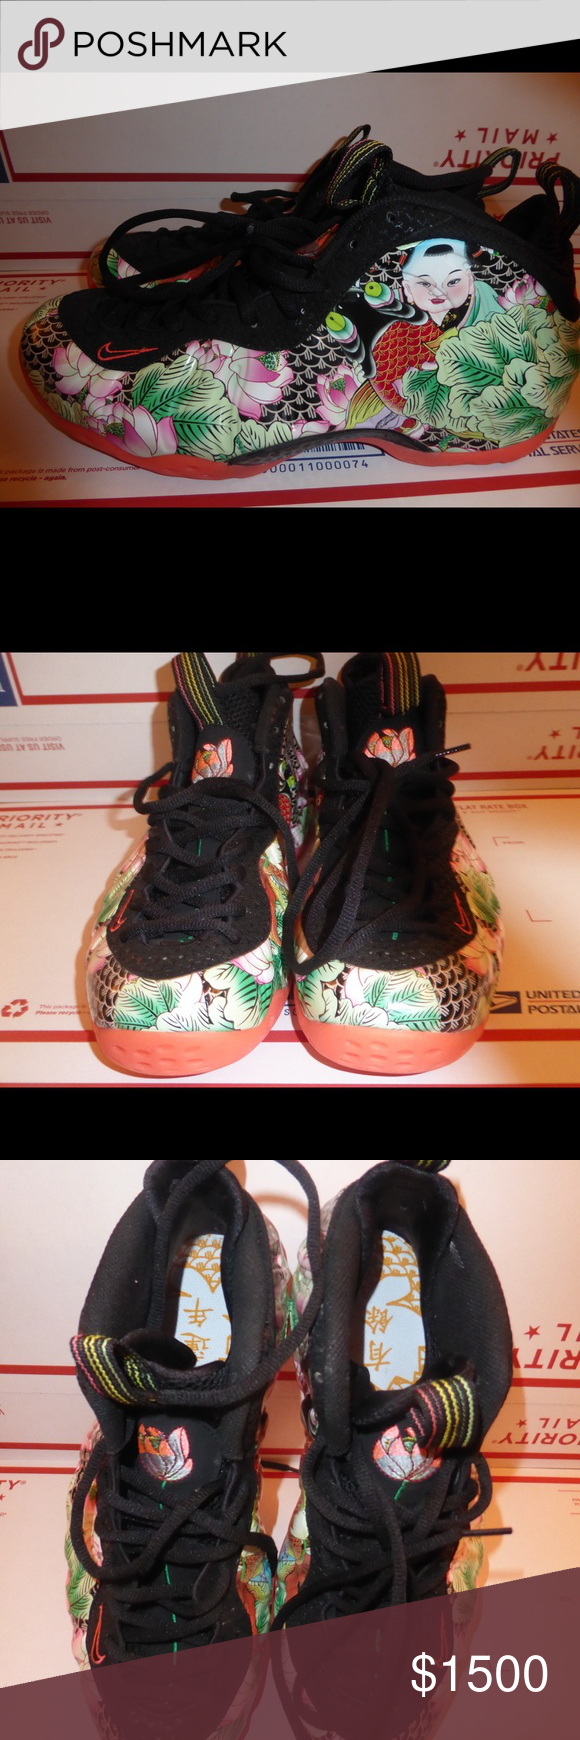 Nike Womens Air Foamposite One Floral ShoesSize 6.5W ...